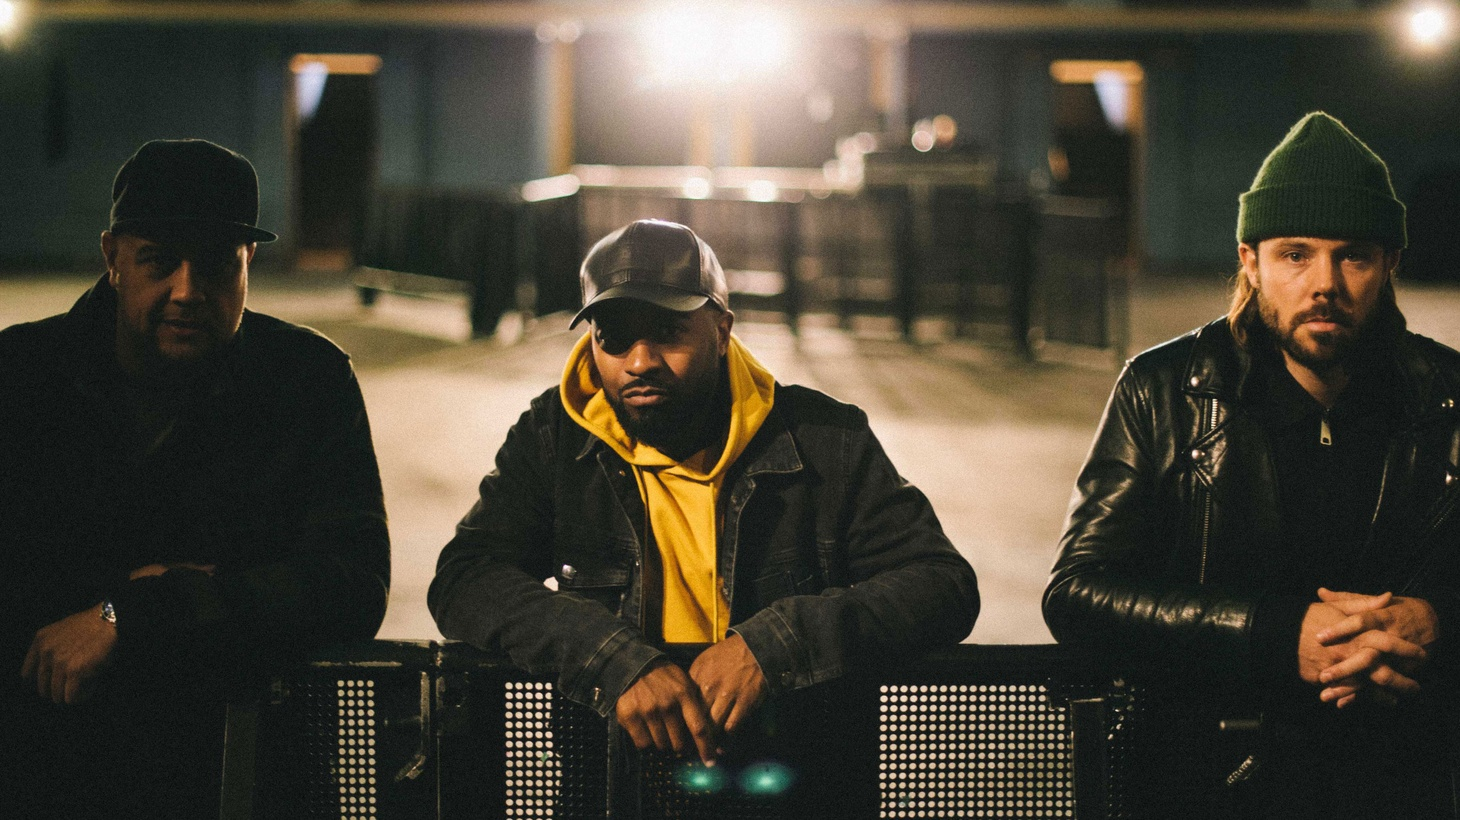 Since their inception a decade ago in their native Toronto, Keys N Krates have carved their own path via a bass-centric, sample-driven sound that merges the realms of electronic and hip-hop.